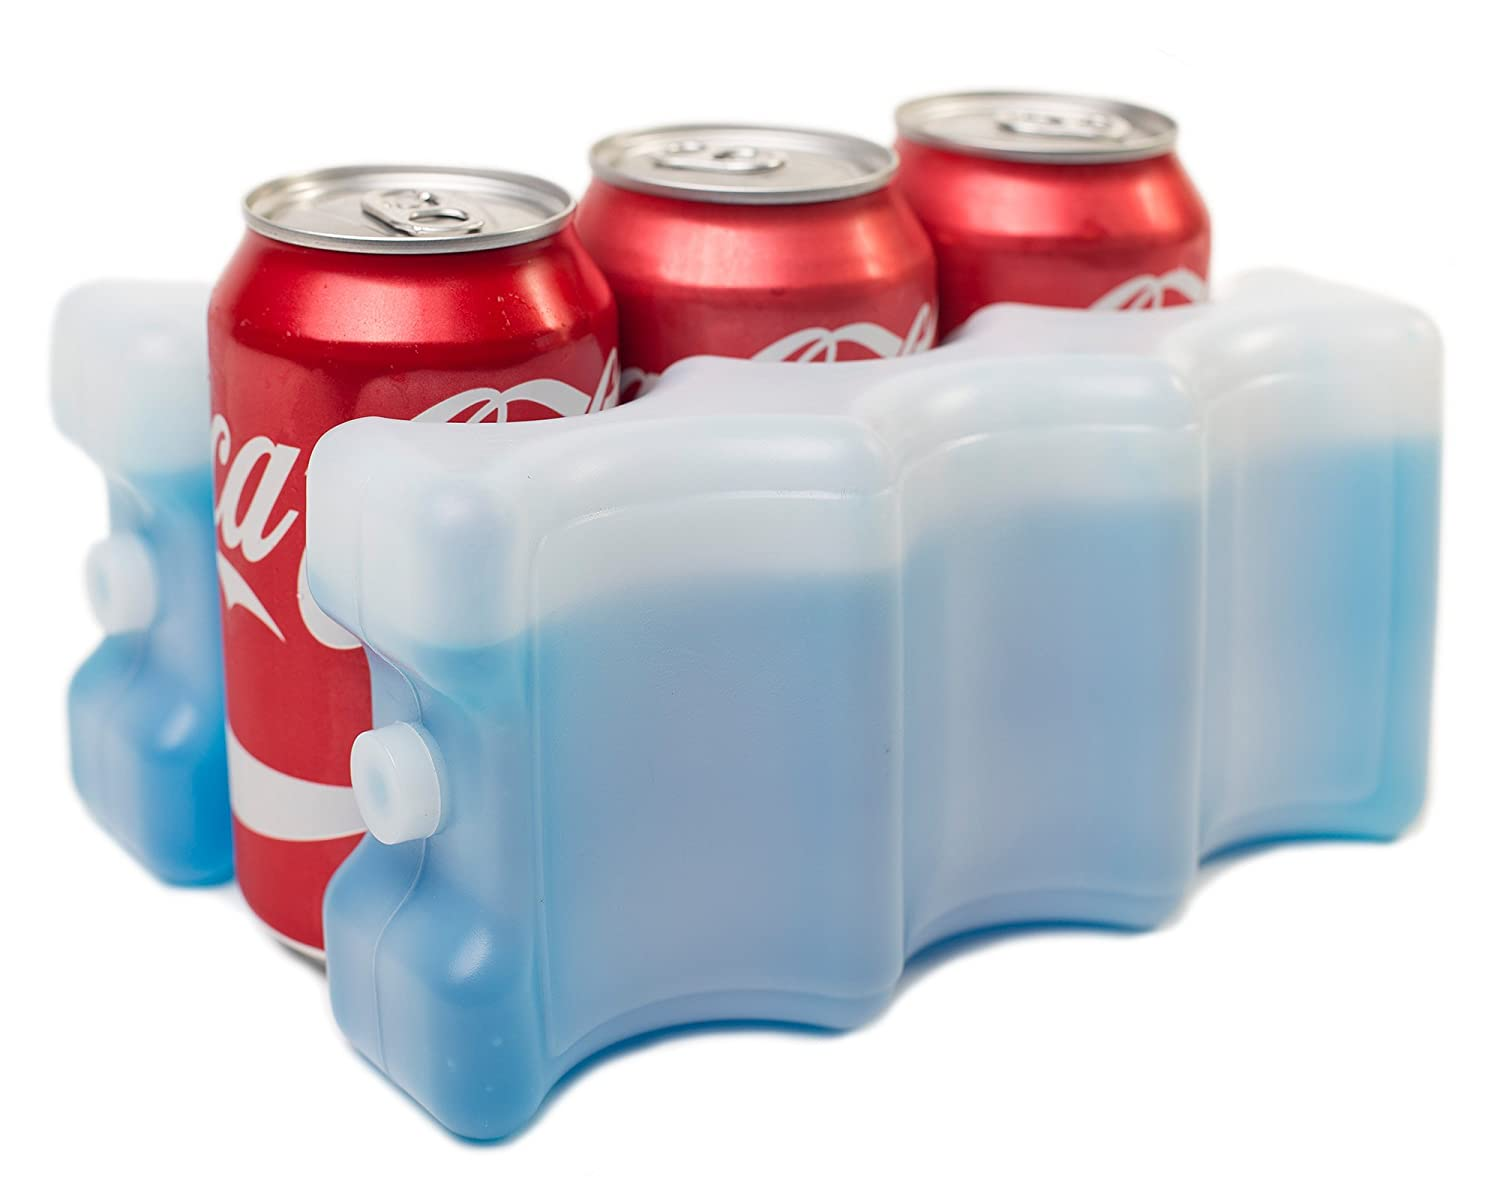 Reusable Cooler that Keeps 6-12 Soda Cans Cold Solid Blue LYSB01NCNO23V-SPRTSEQIP Kleager Can Beer Ice Pack for Lunch Box 2 Piece Double Sided